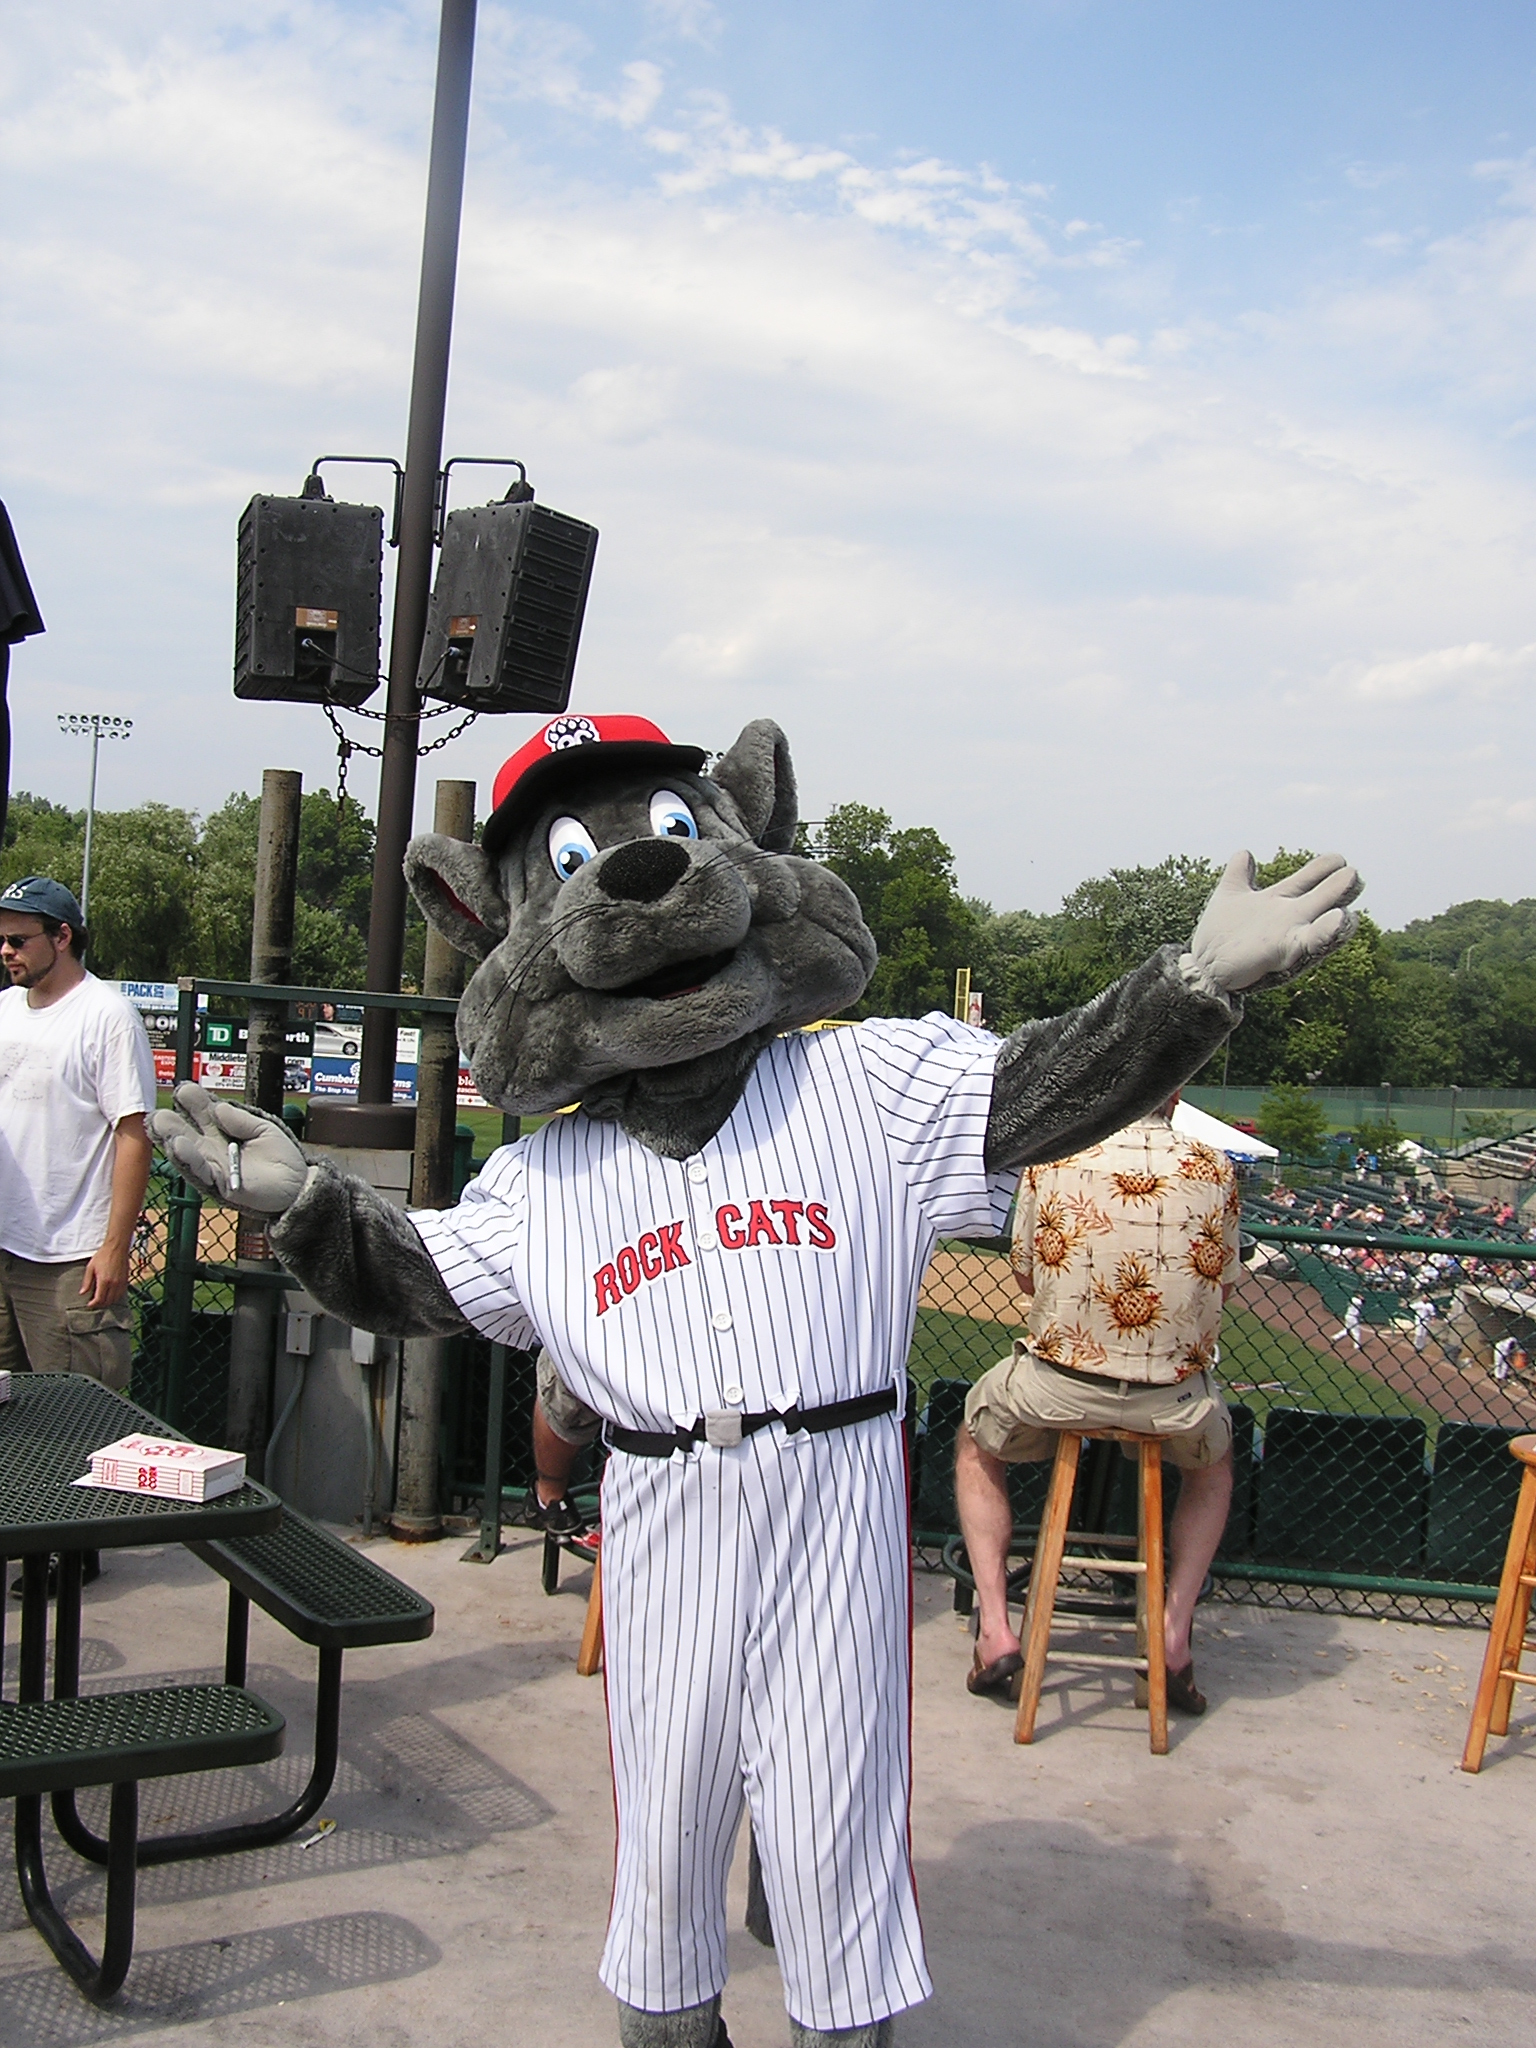 Rocky, the Rock Cats Mascot - New Britain Stadium